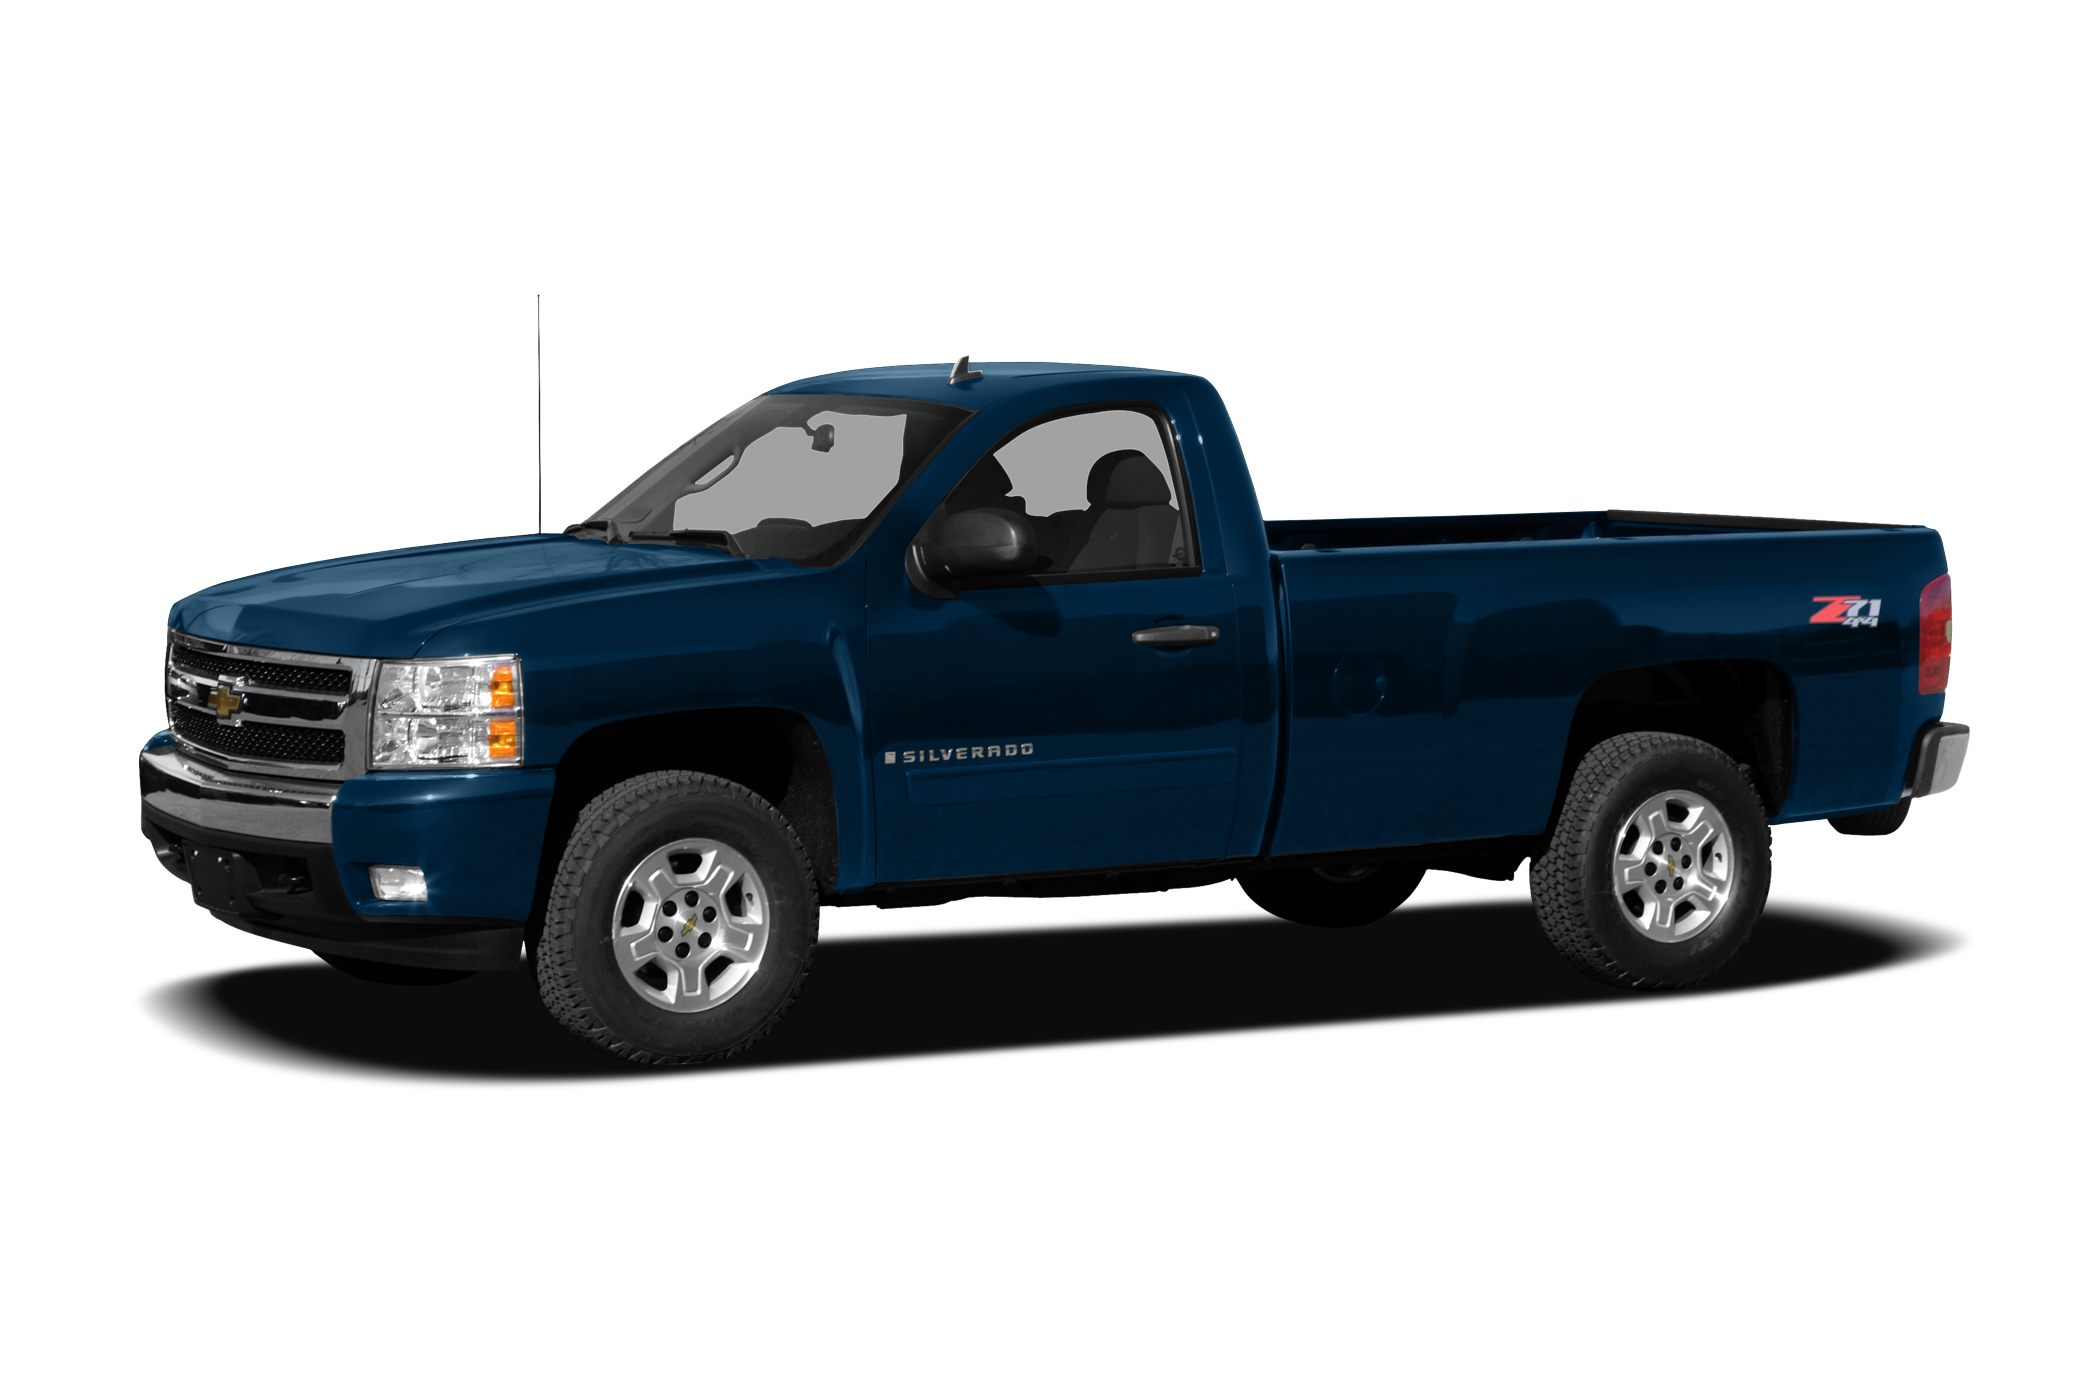 2008 Chevrolet Silverado 1500 Work Truck Crew Cab Pickup for sale in Denver for $22,988 with 108,910 miles